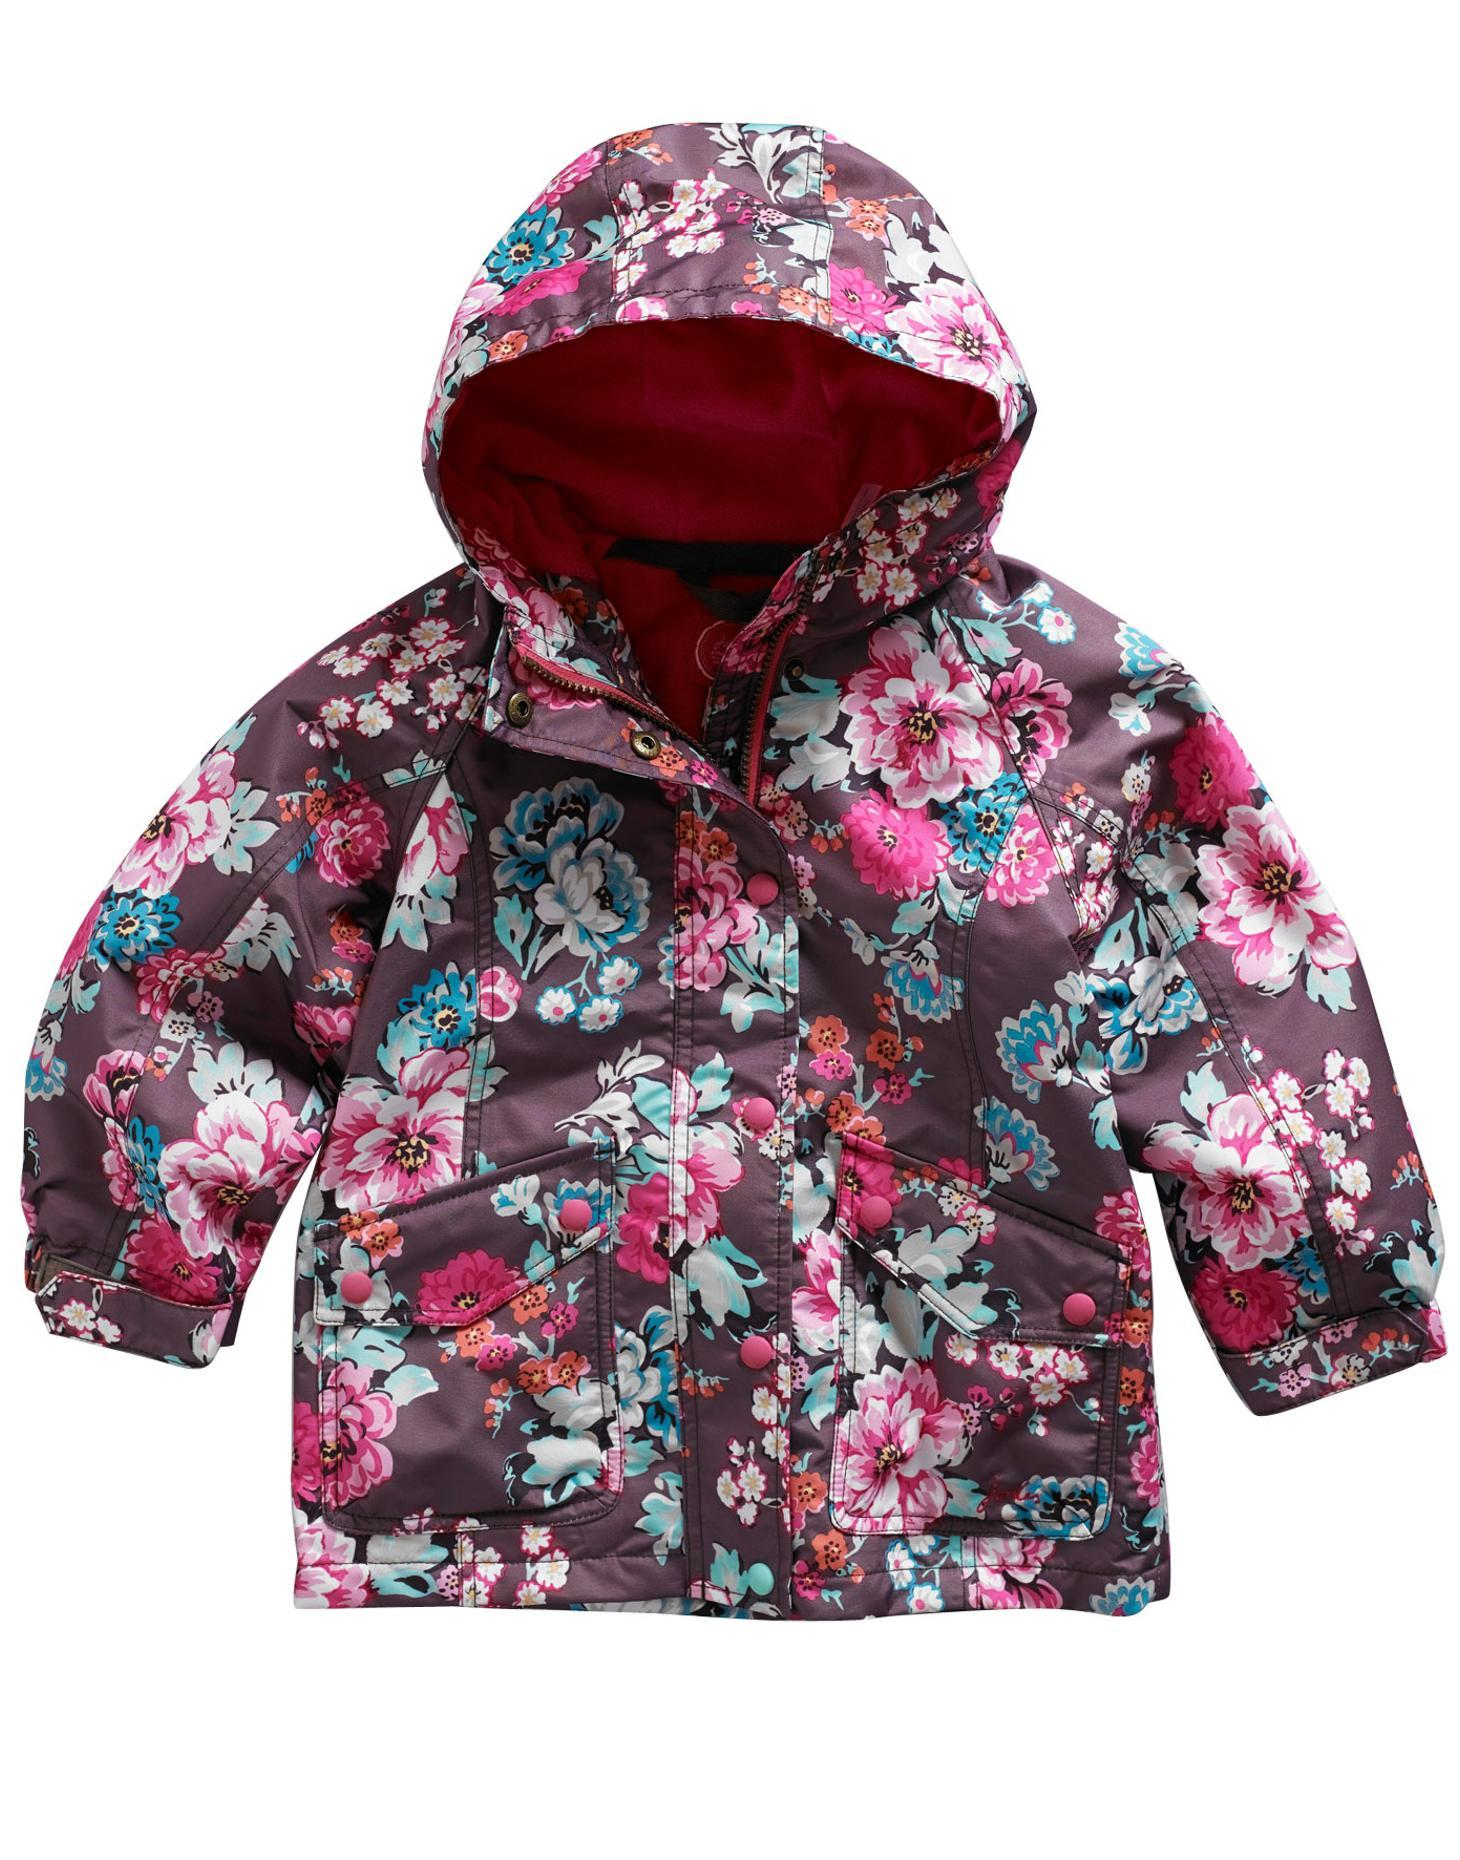 100% genuine preview of biggest discount Joules girls raincoat by Kirstie Praline in Floral | Fleece Lined | 3 years